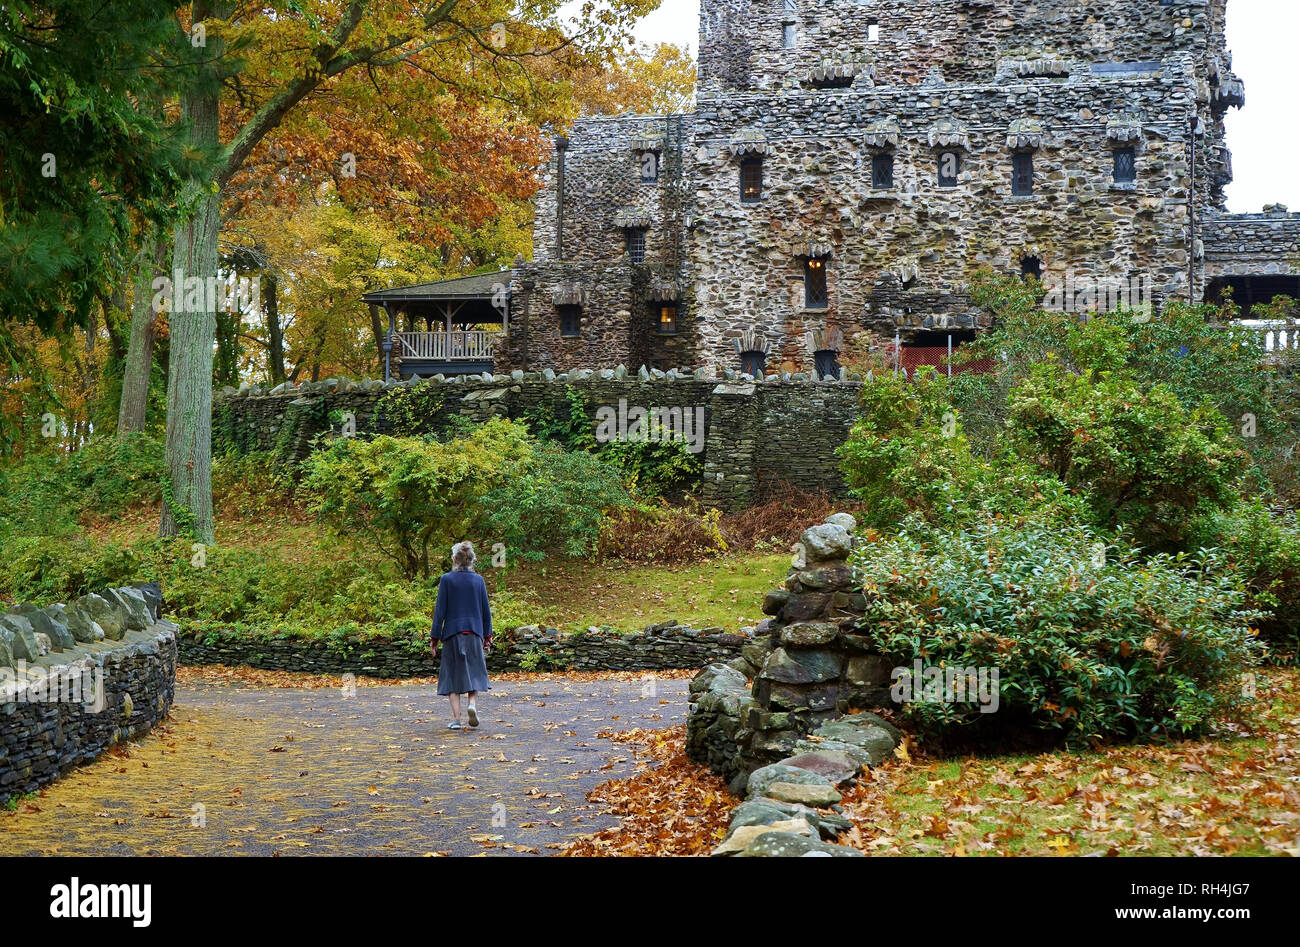 East Haddam, CT USA. Nov 2018. An elderly caretaker walking to work at the Gillette Castle in New England. - Stock Image